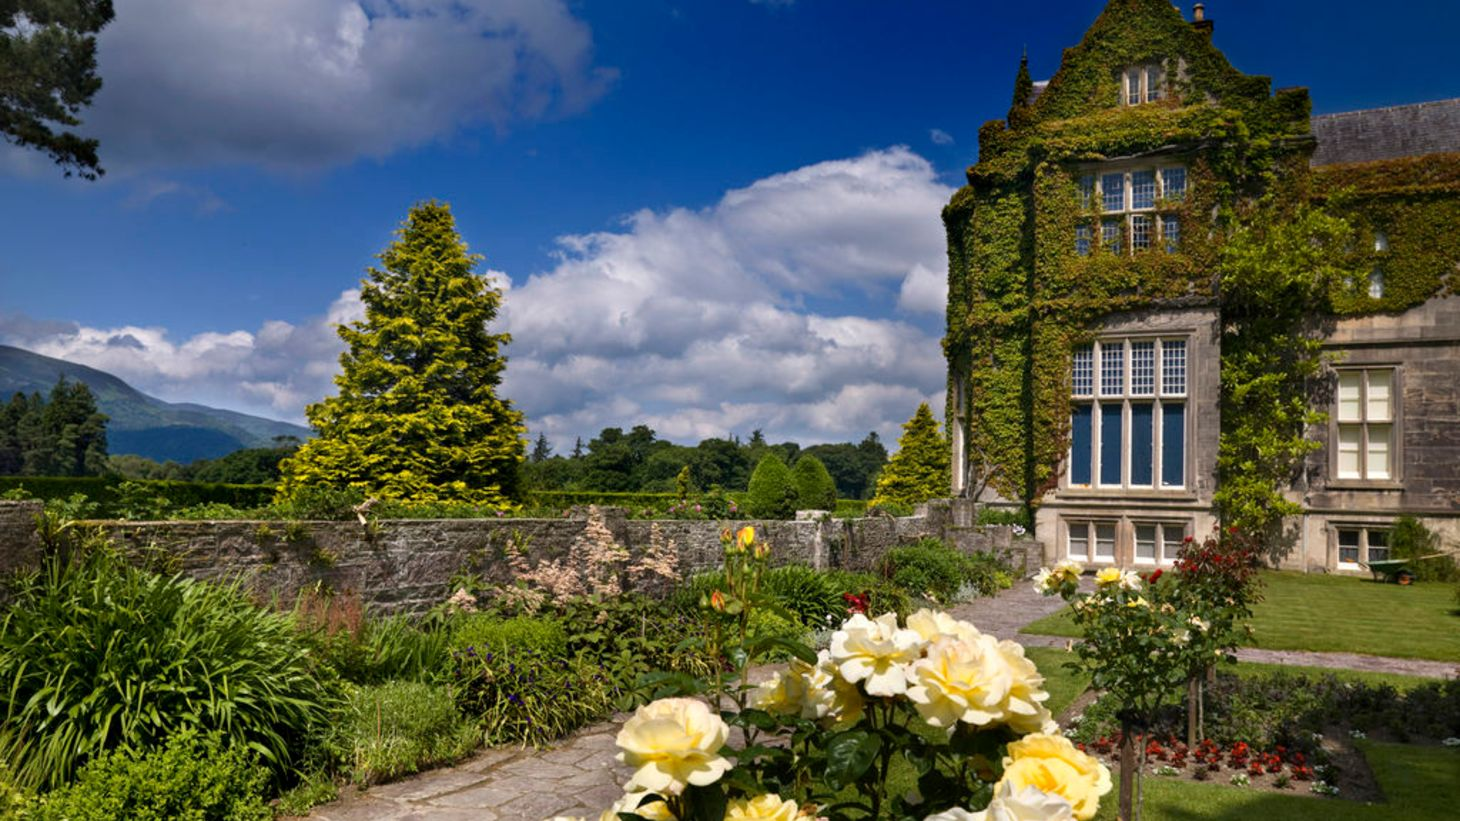 Visit Muckross House before walking to Torc Waterfall.